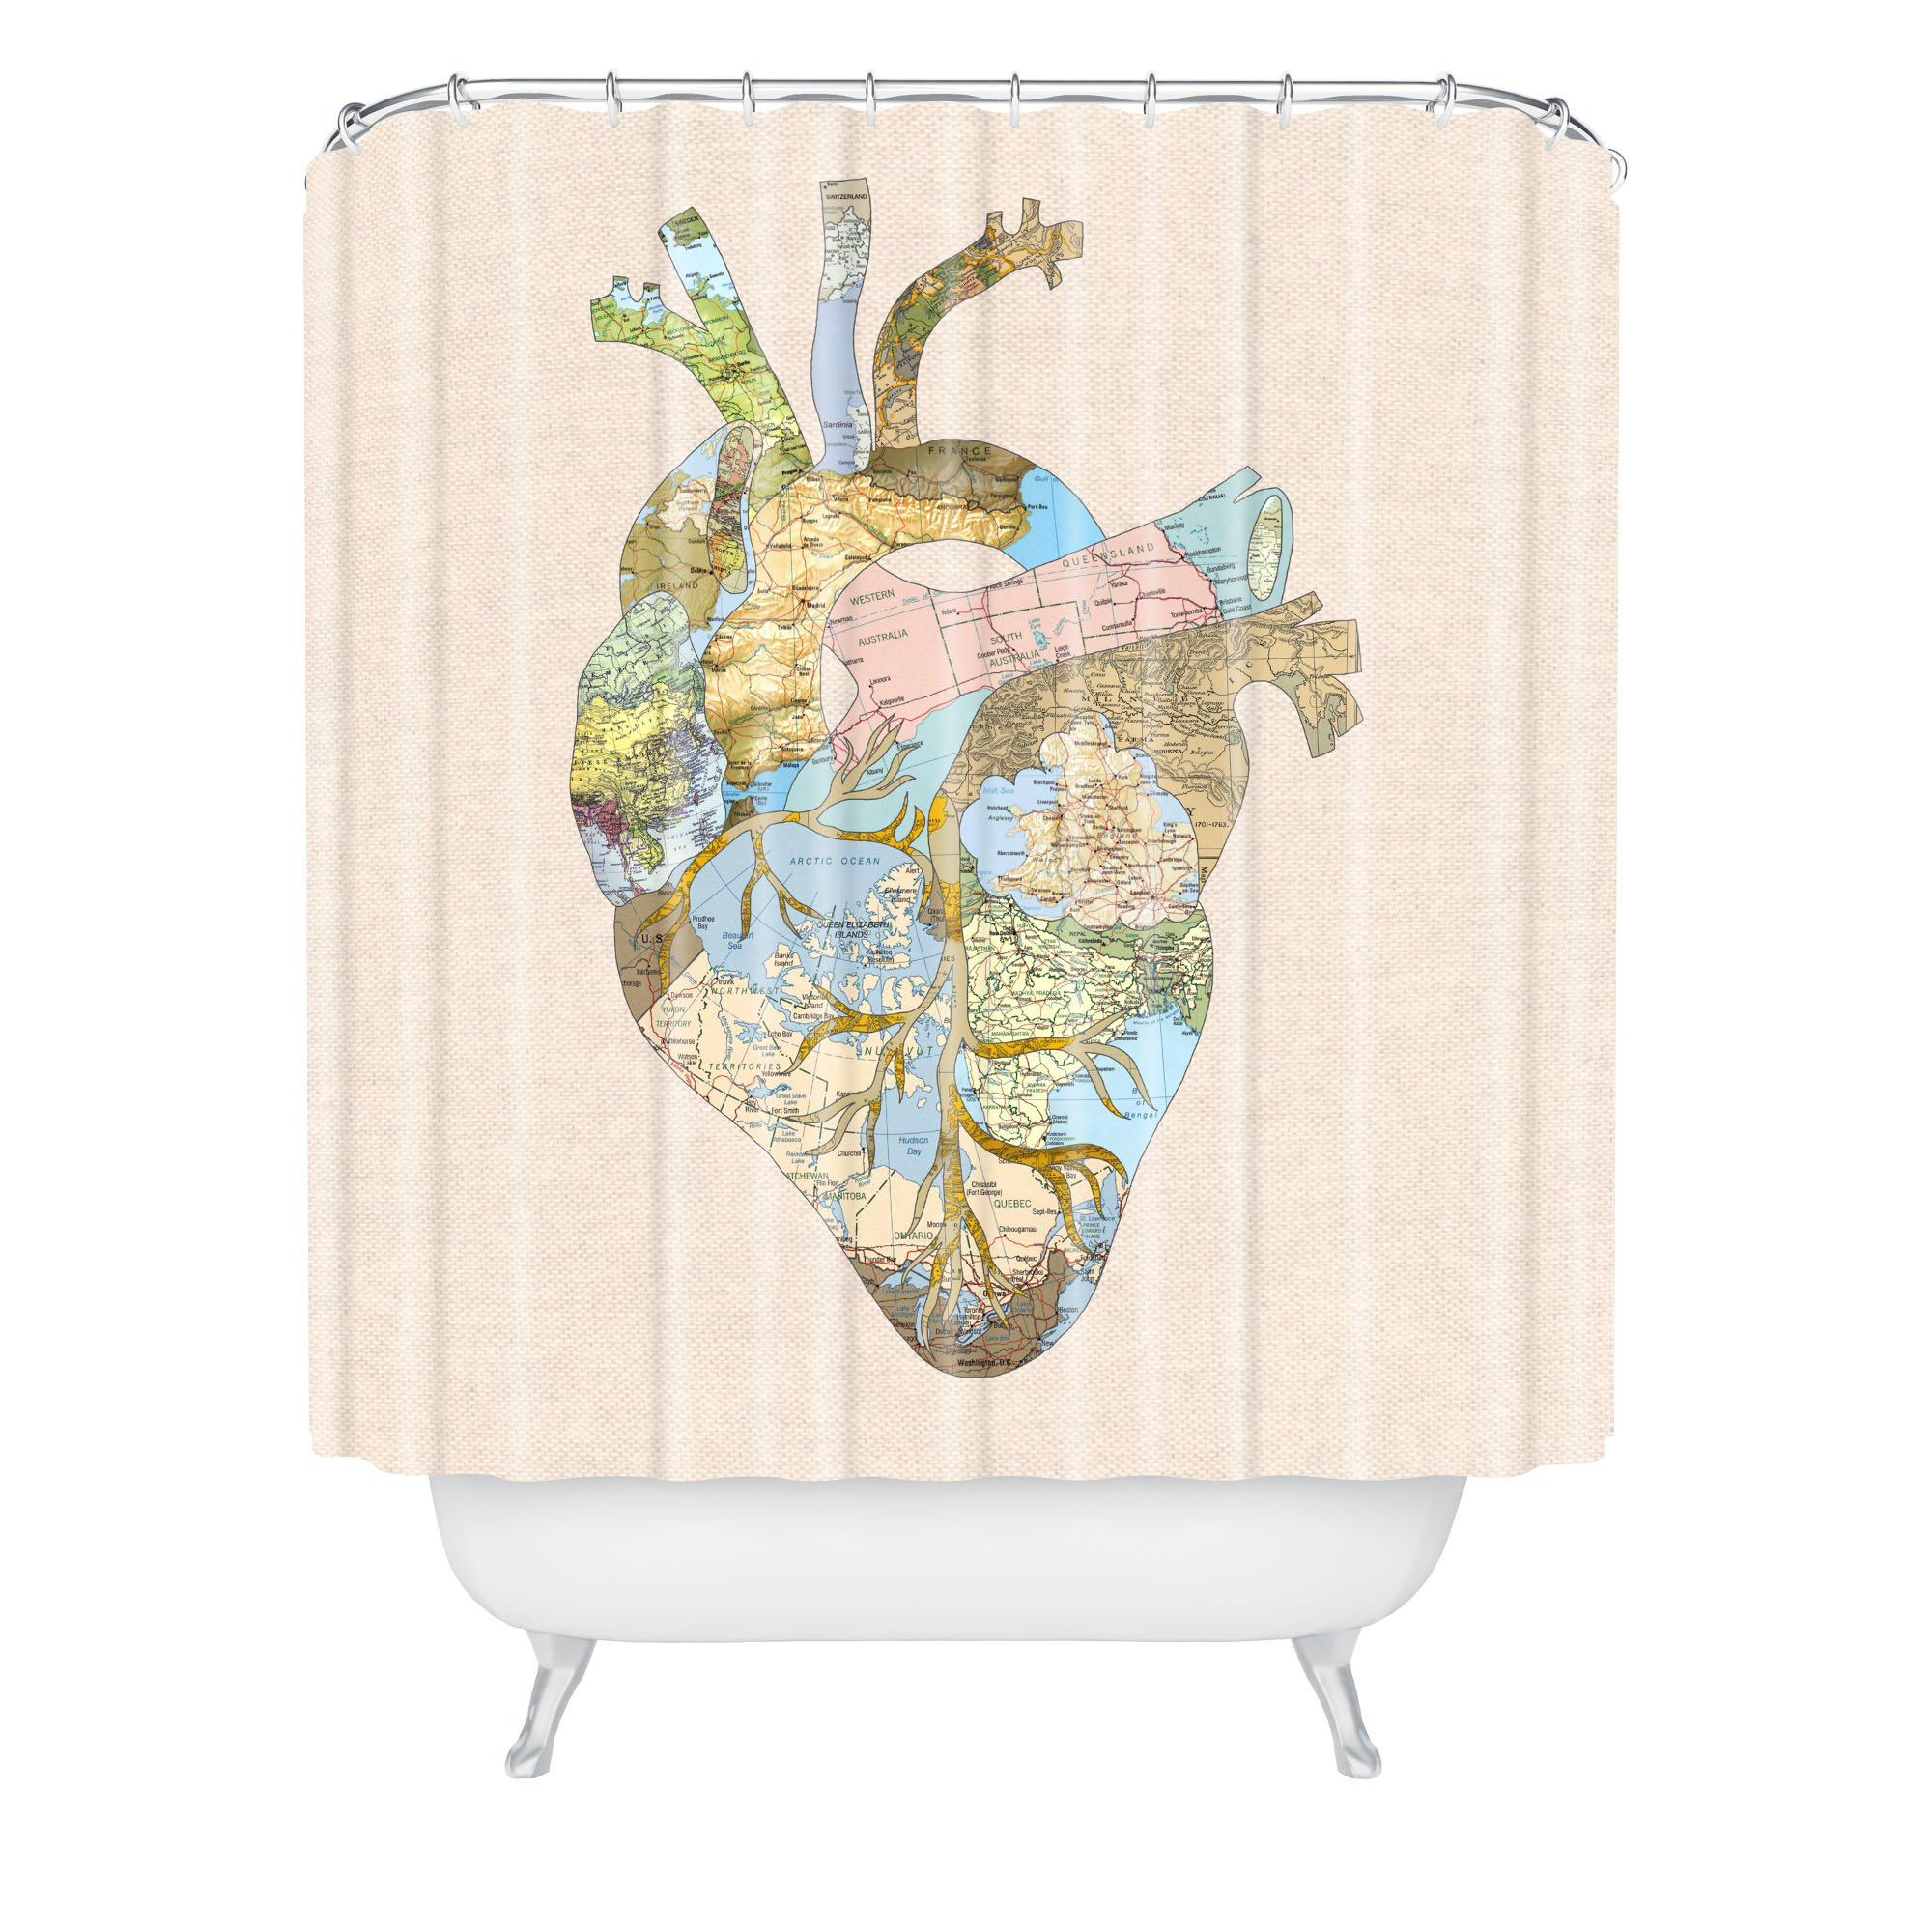 "Deny Designs Bianca Green A Travelers Heart Shower Curtain , 69"" x 90"""